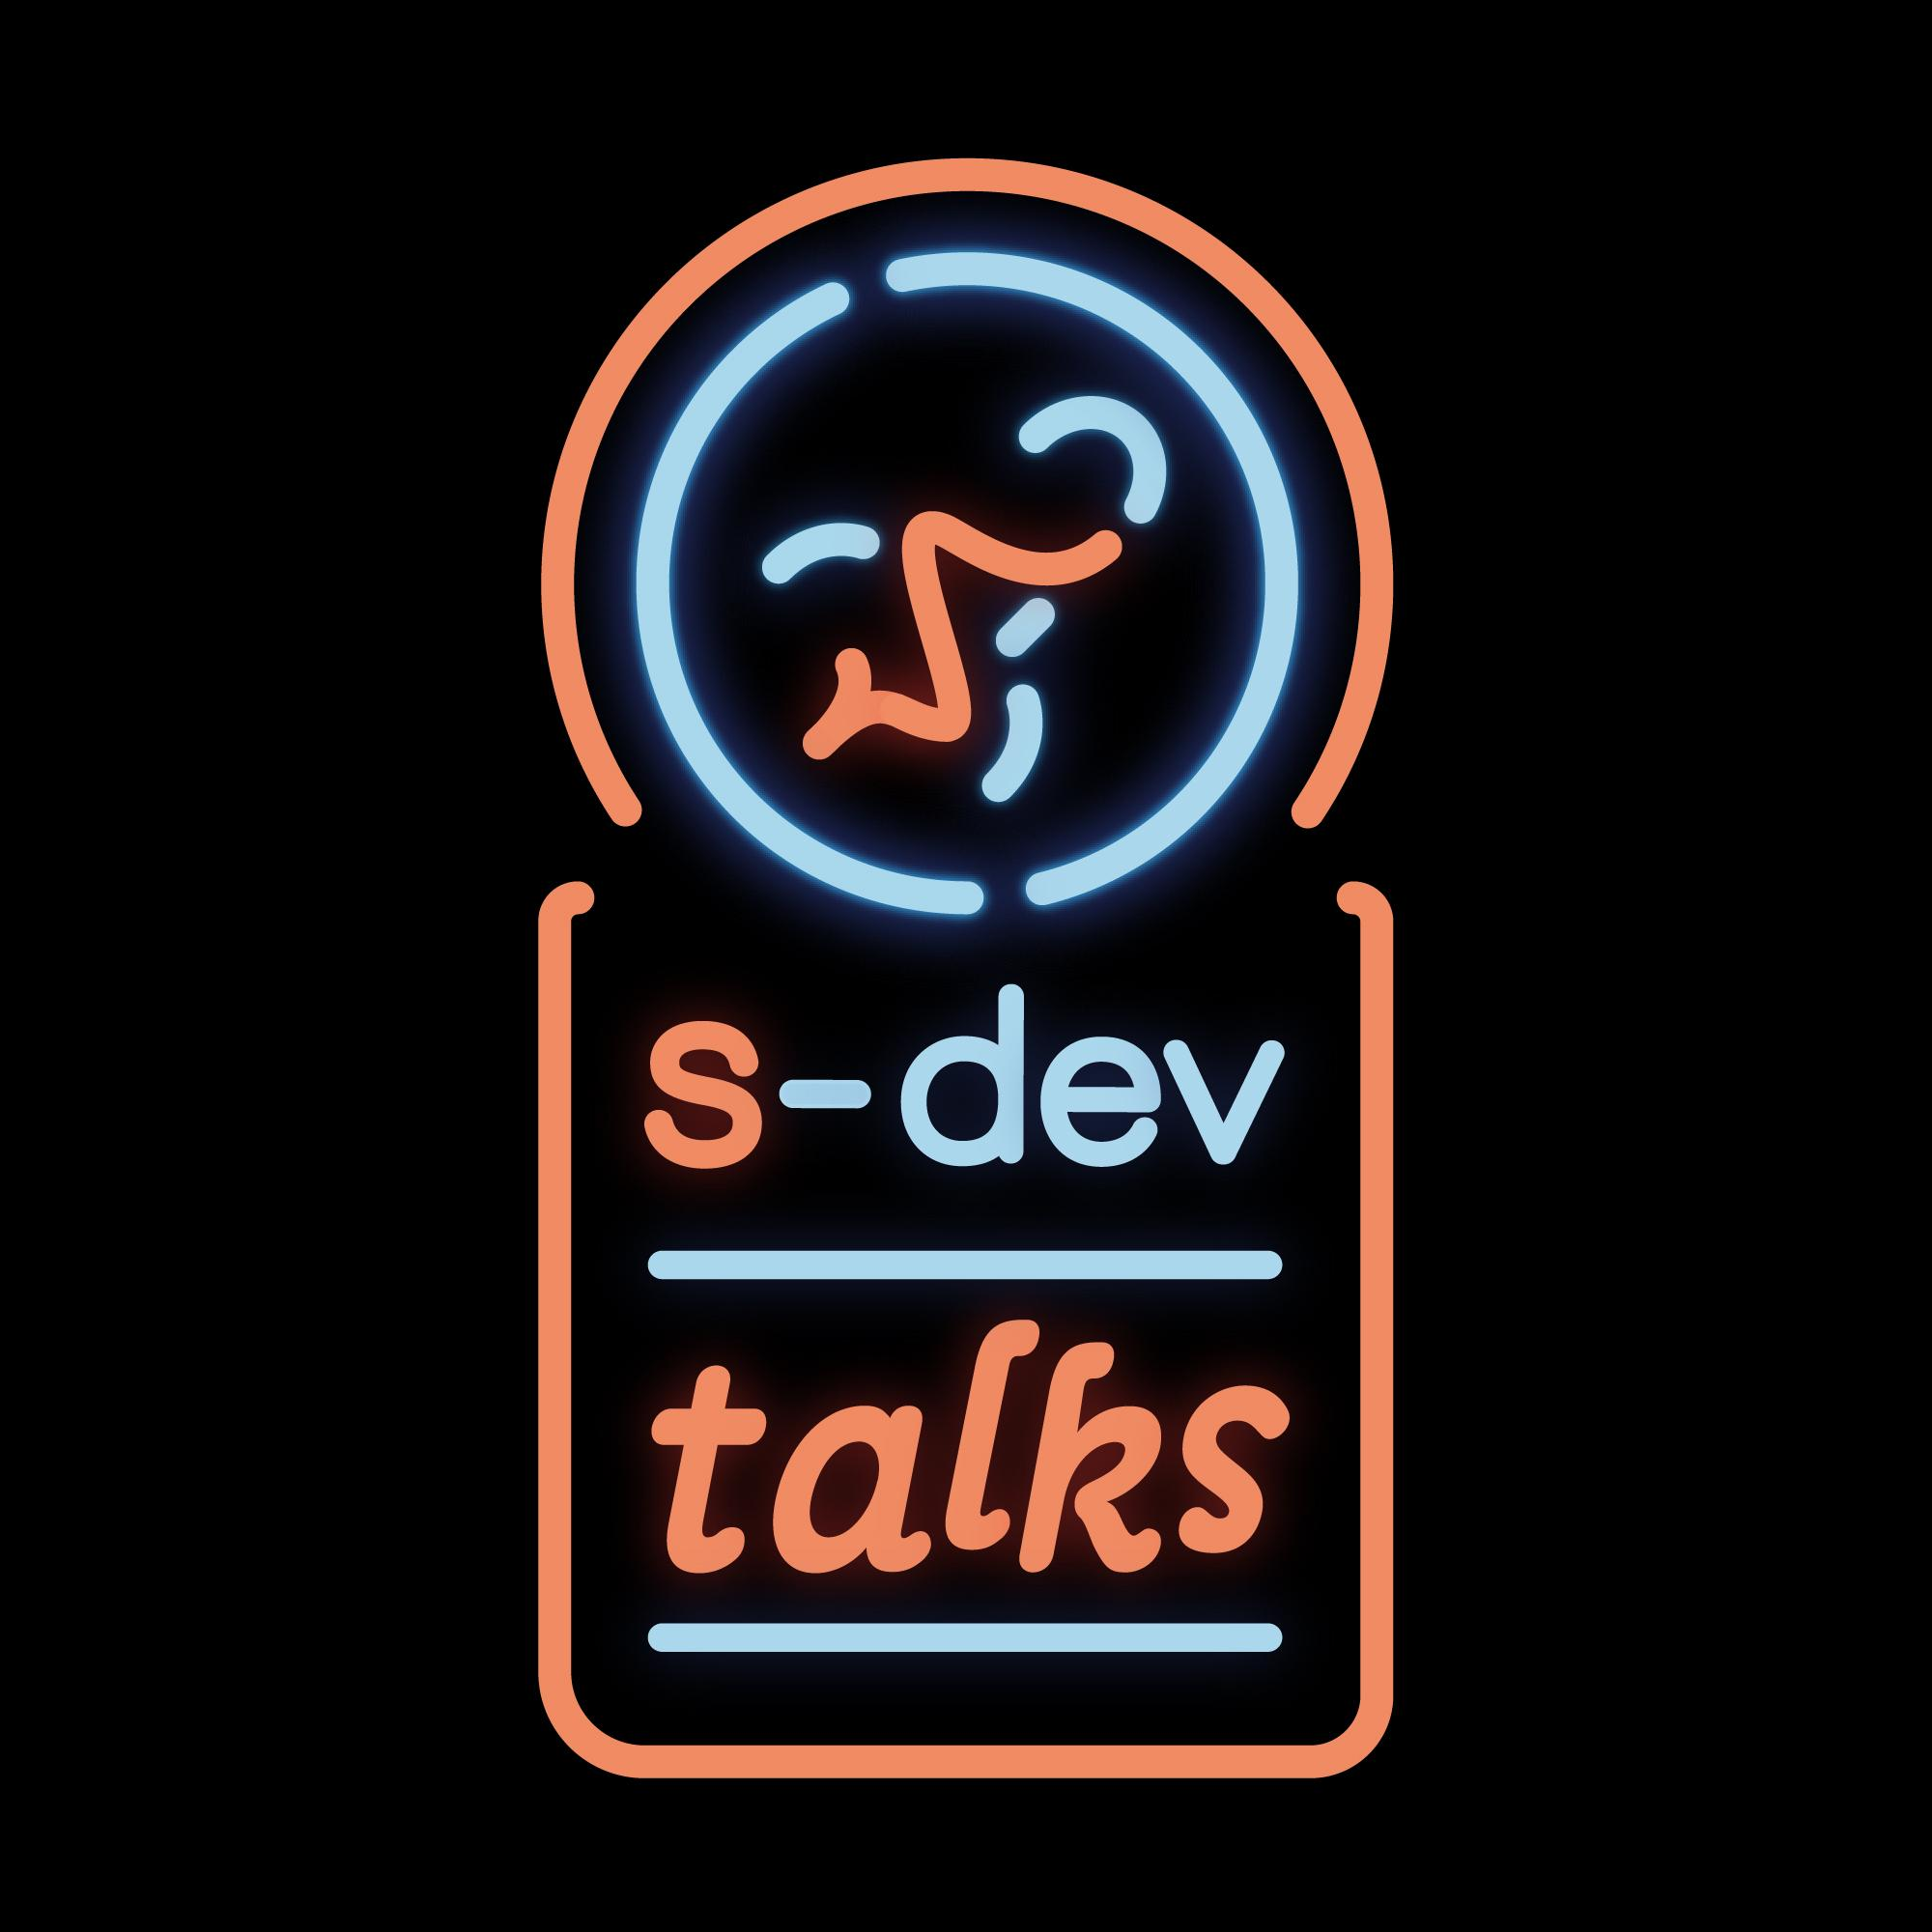 s-dev talks